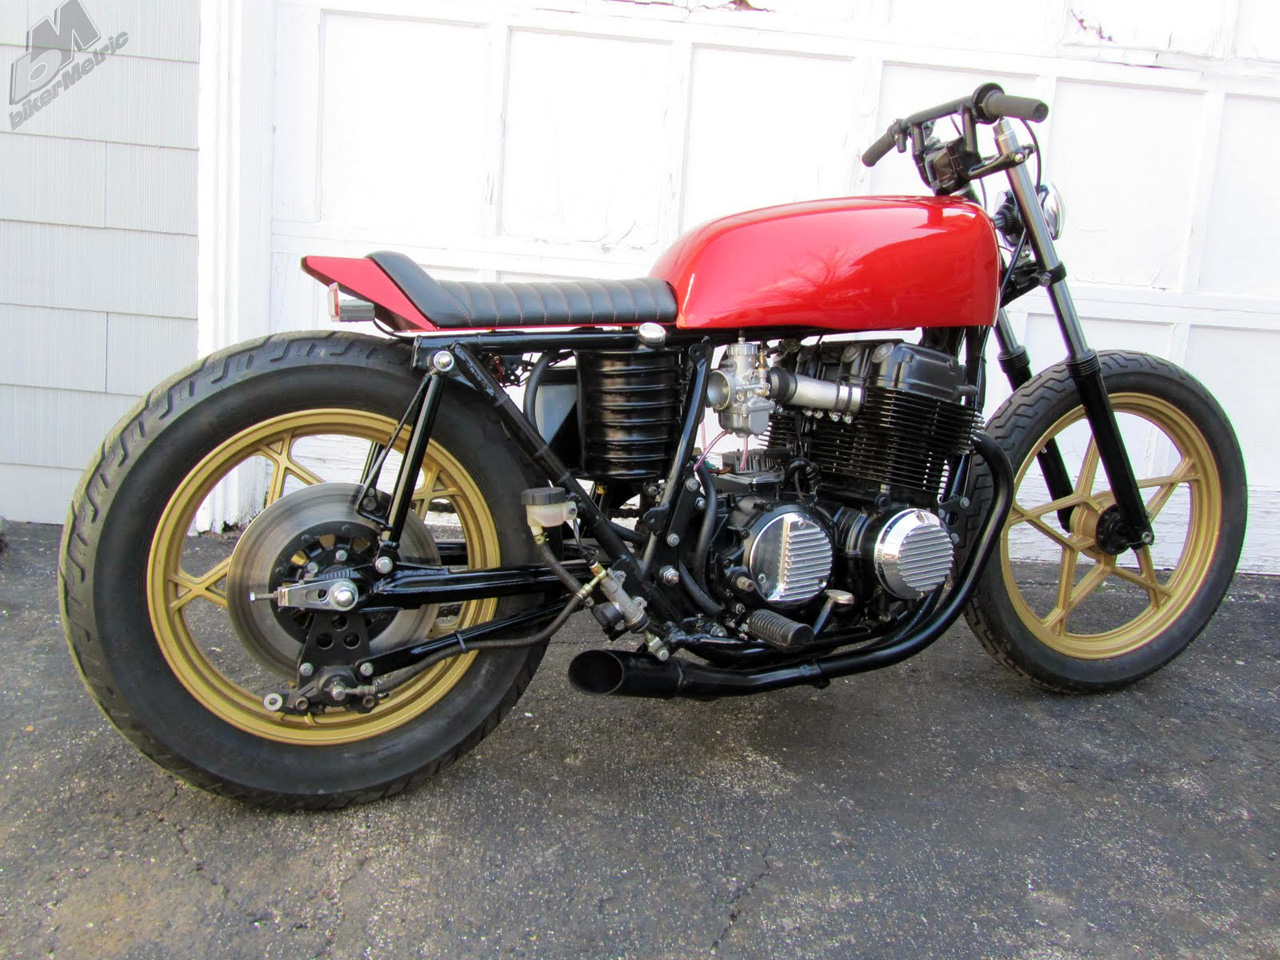 ... missouri, have what was once a 1977 honda cb750 super sport that they, um, did stuff with. it's for sale on ebay and there is six hours left.